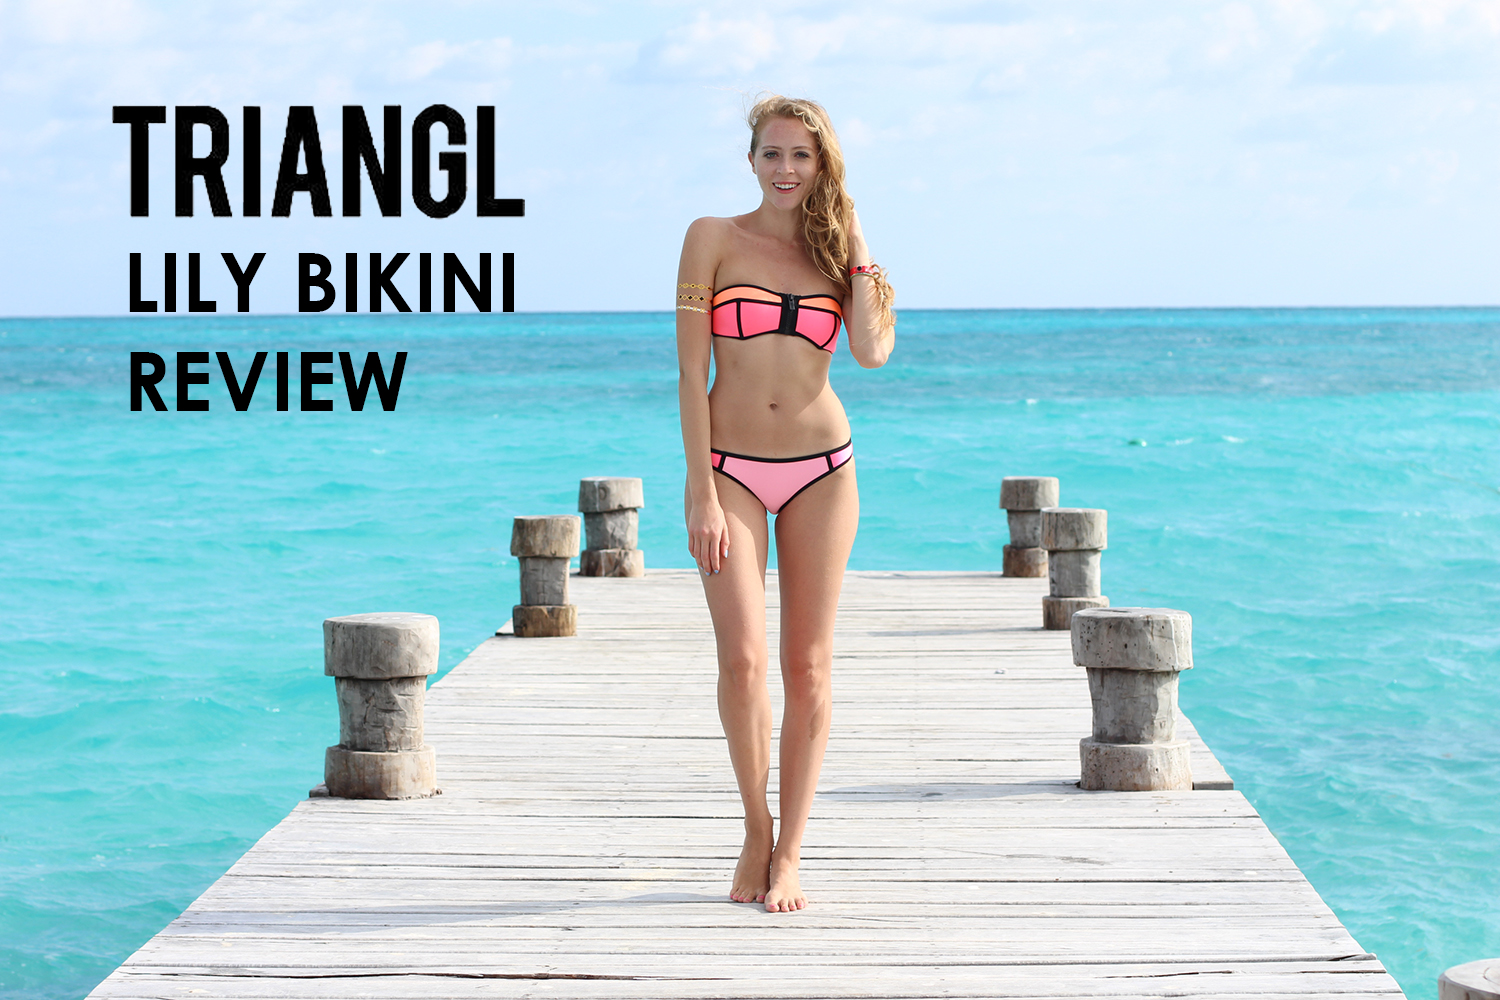 Triangl Lily Strawberry Kiss Review